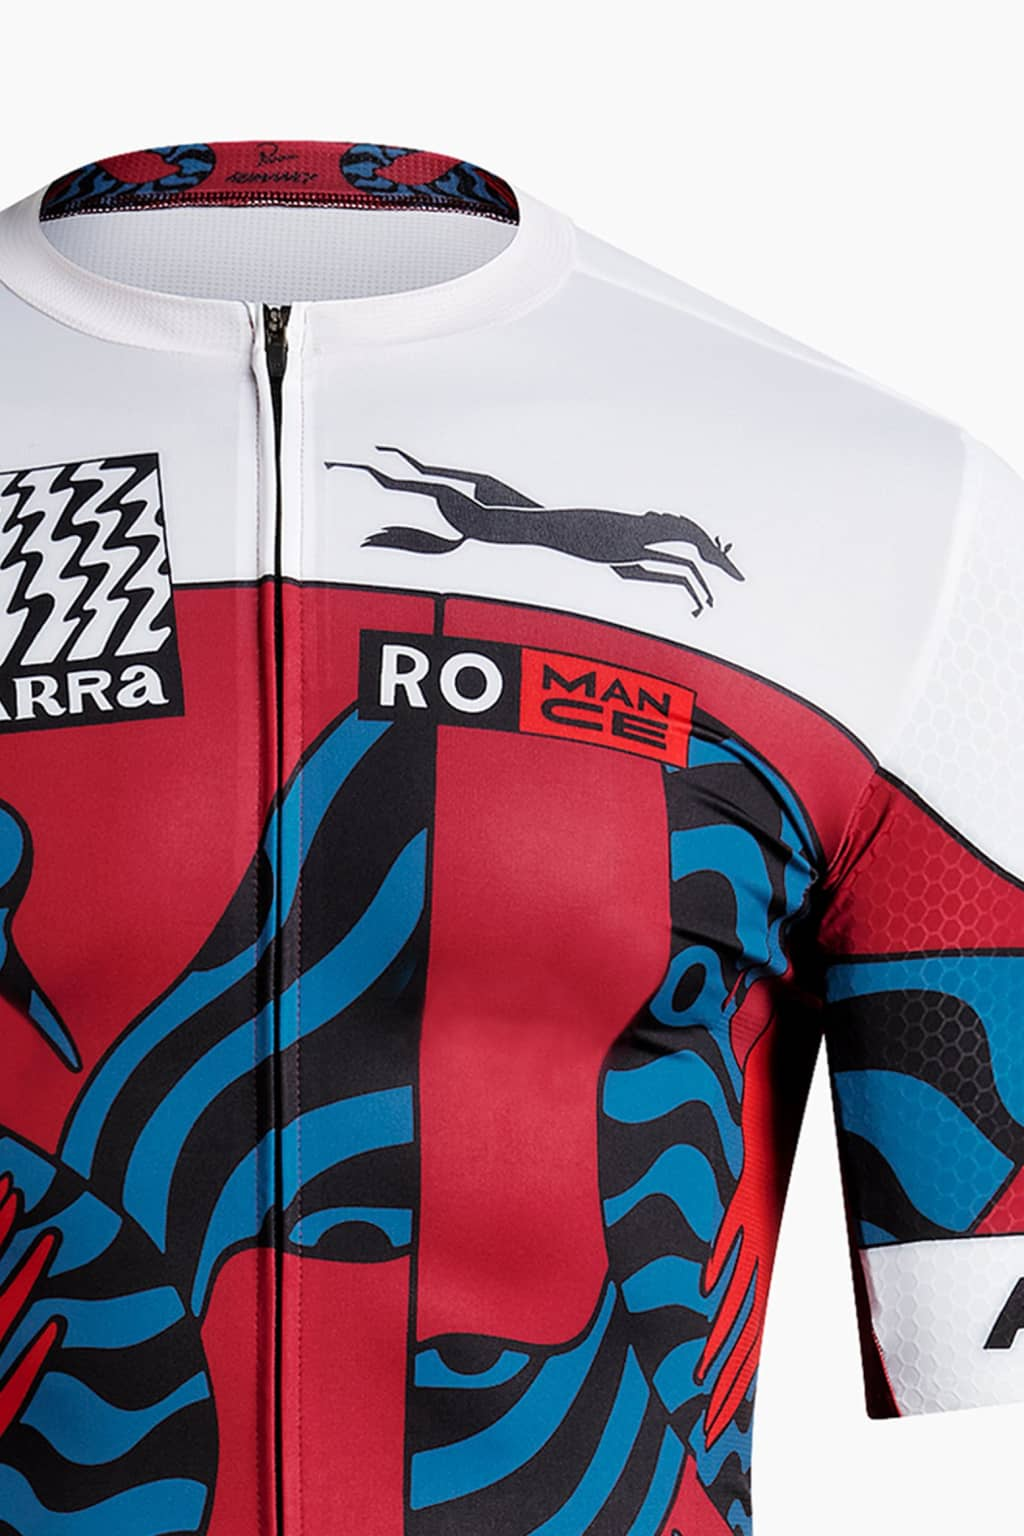 New Arrivals: by Parra x